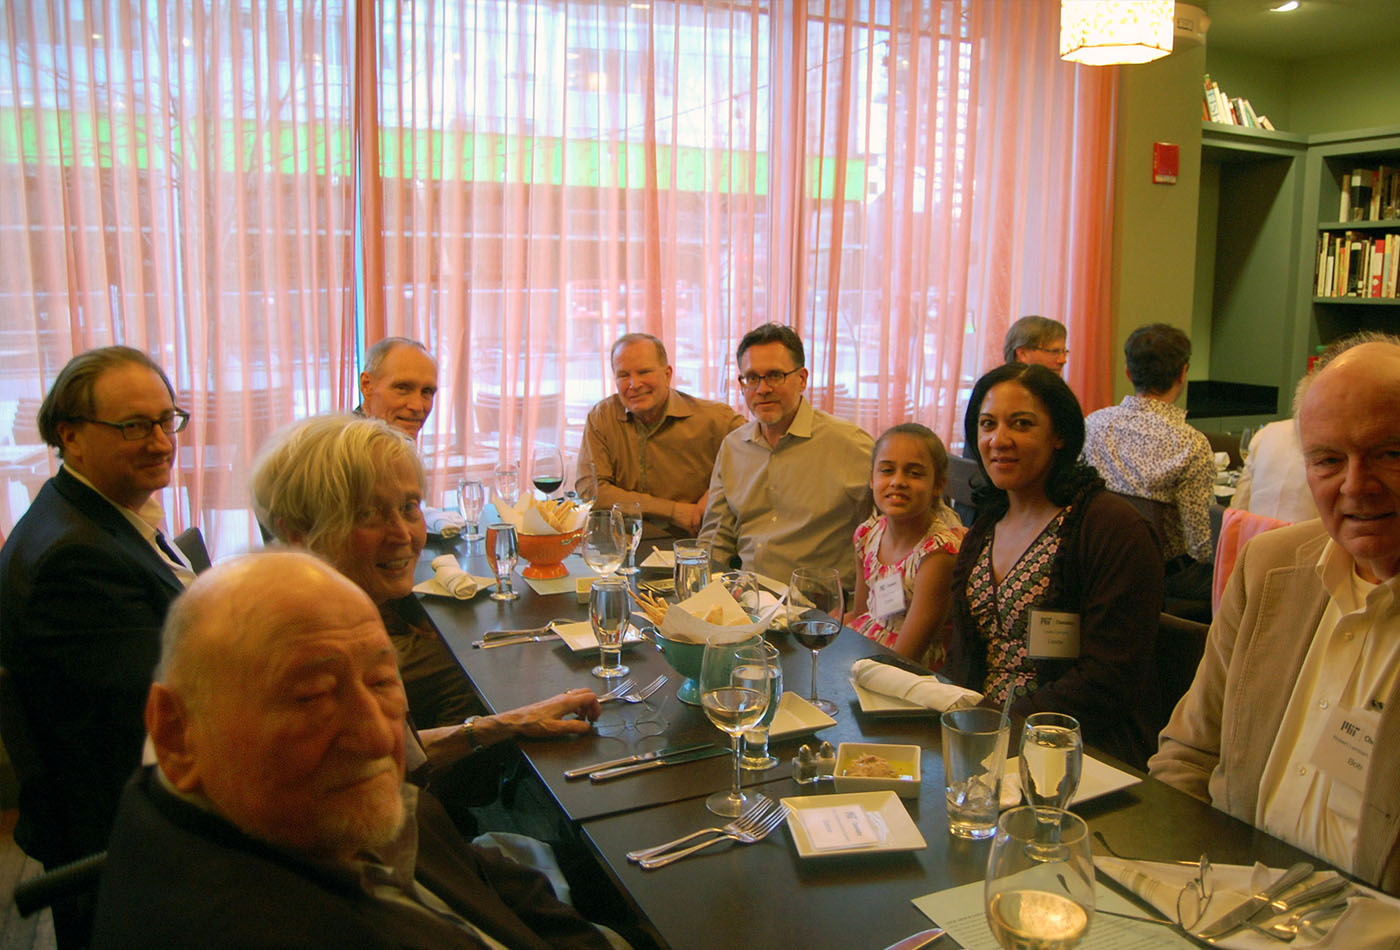 L-R: (clockwise) seated at dinner: Prof. Emeritus Dietmar Seyferth, Helena Seyferth, Howard Withers, PhD '81, James Kronauge, PhD '87 (Davison), Prof. Christopher Cummins, Cosette Cummins, Lisette Cummins, Robert Lambert, PhD '73